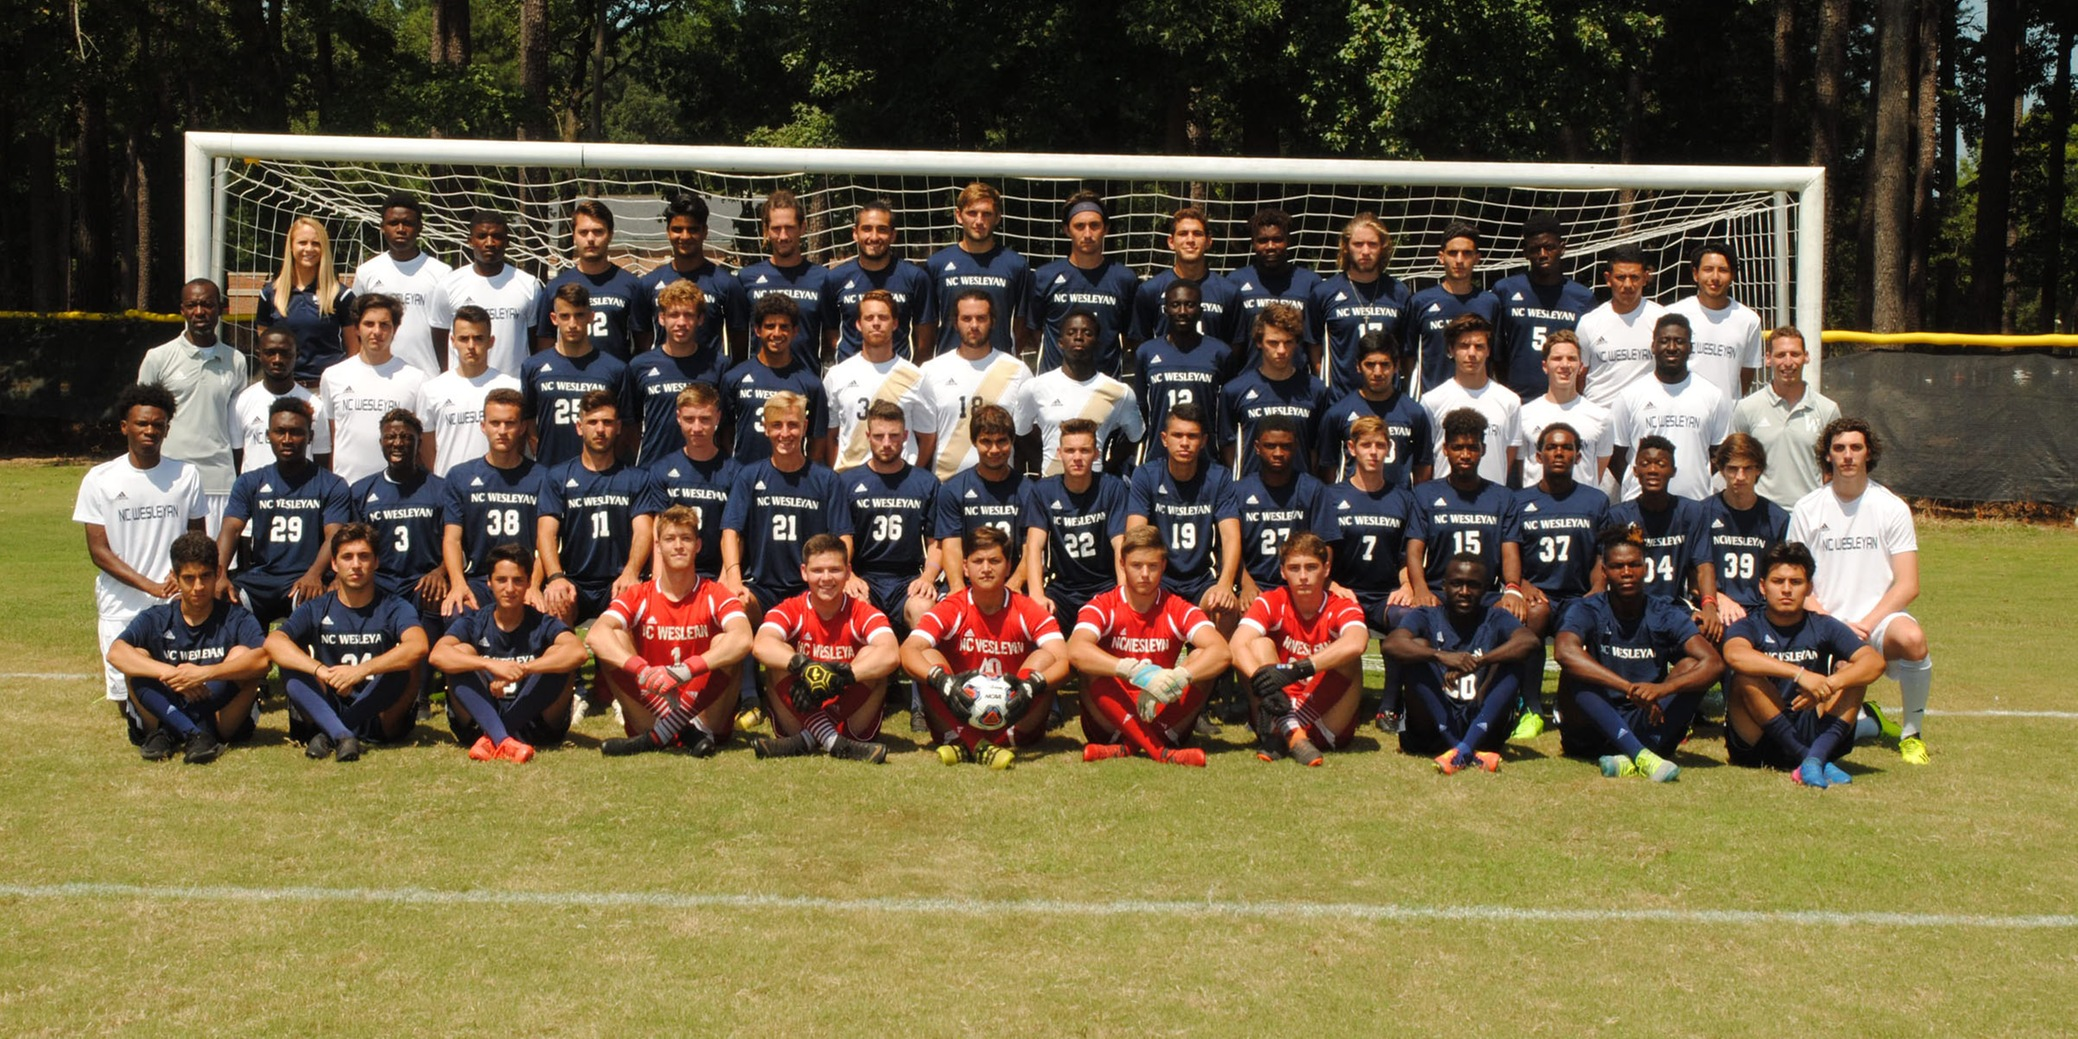 Men's Soccer suffers tough loss in USA South Semifinals; Genovese named to all-tourney team